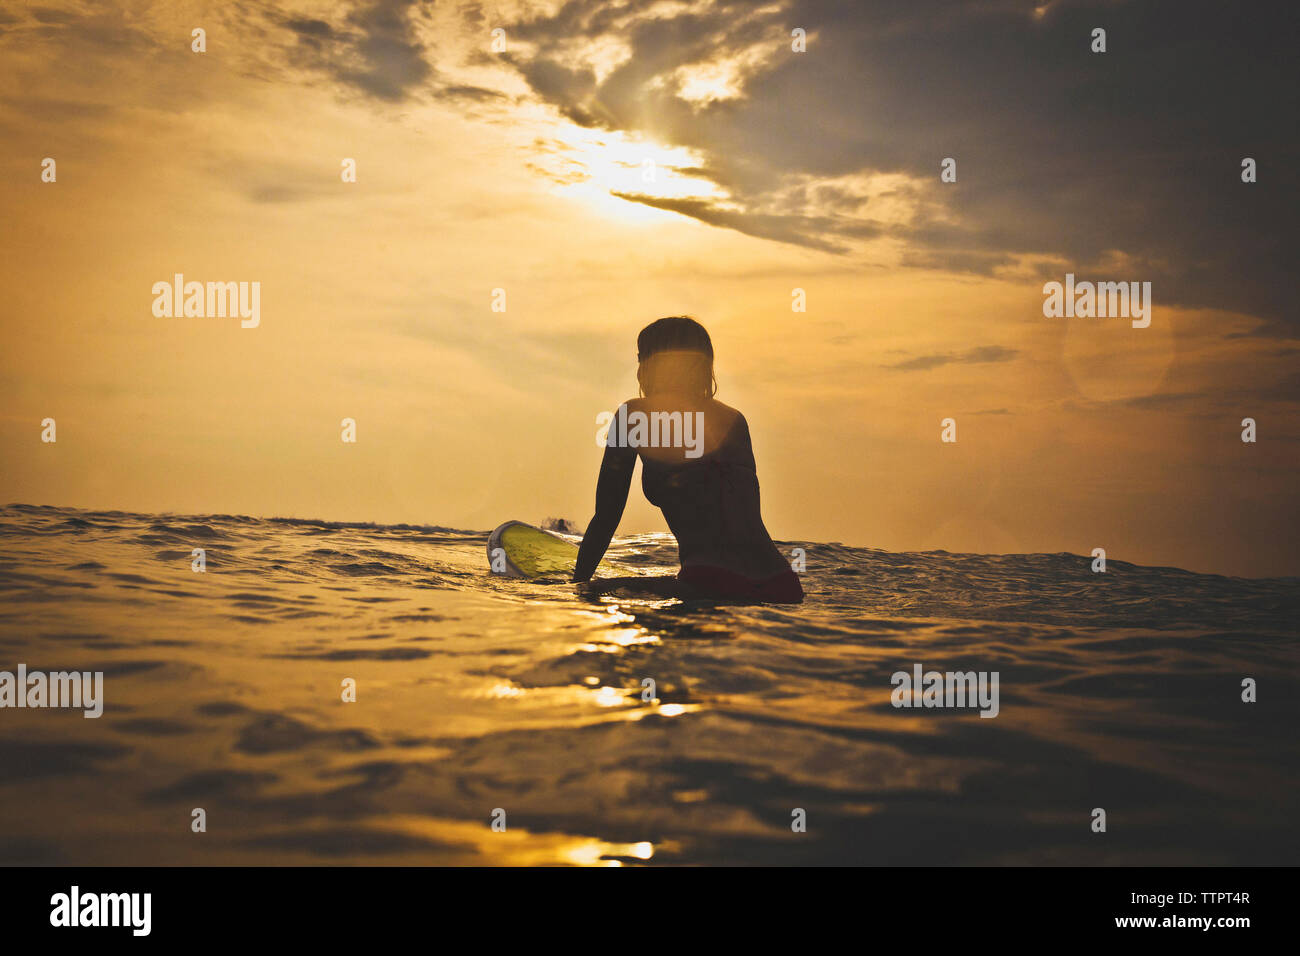 Woman sitting on surfboard in sea against sky - Stock Image